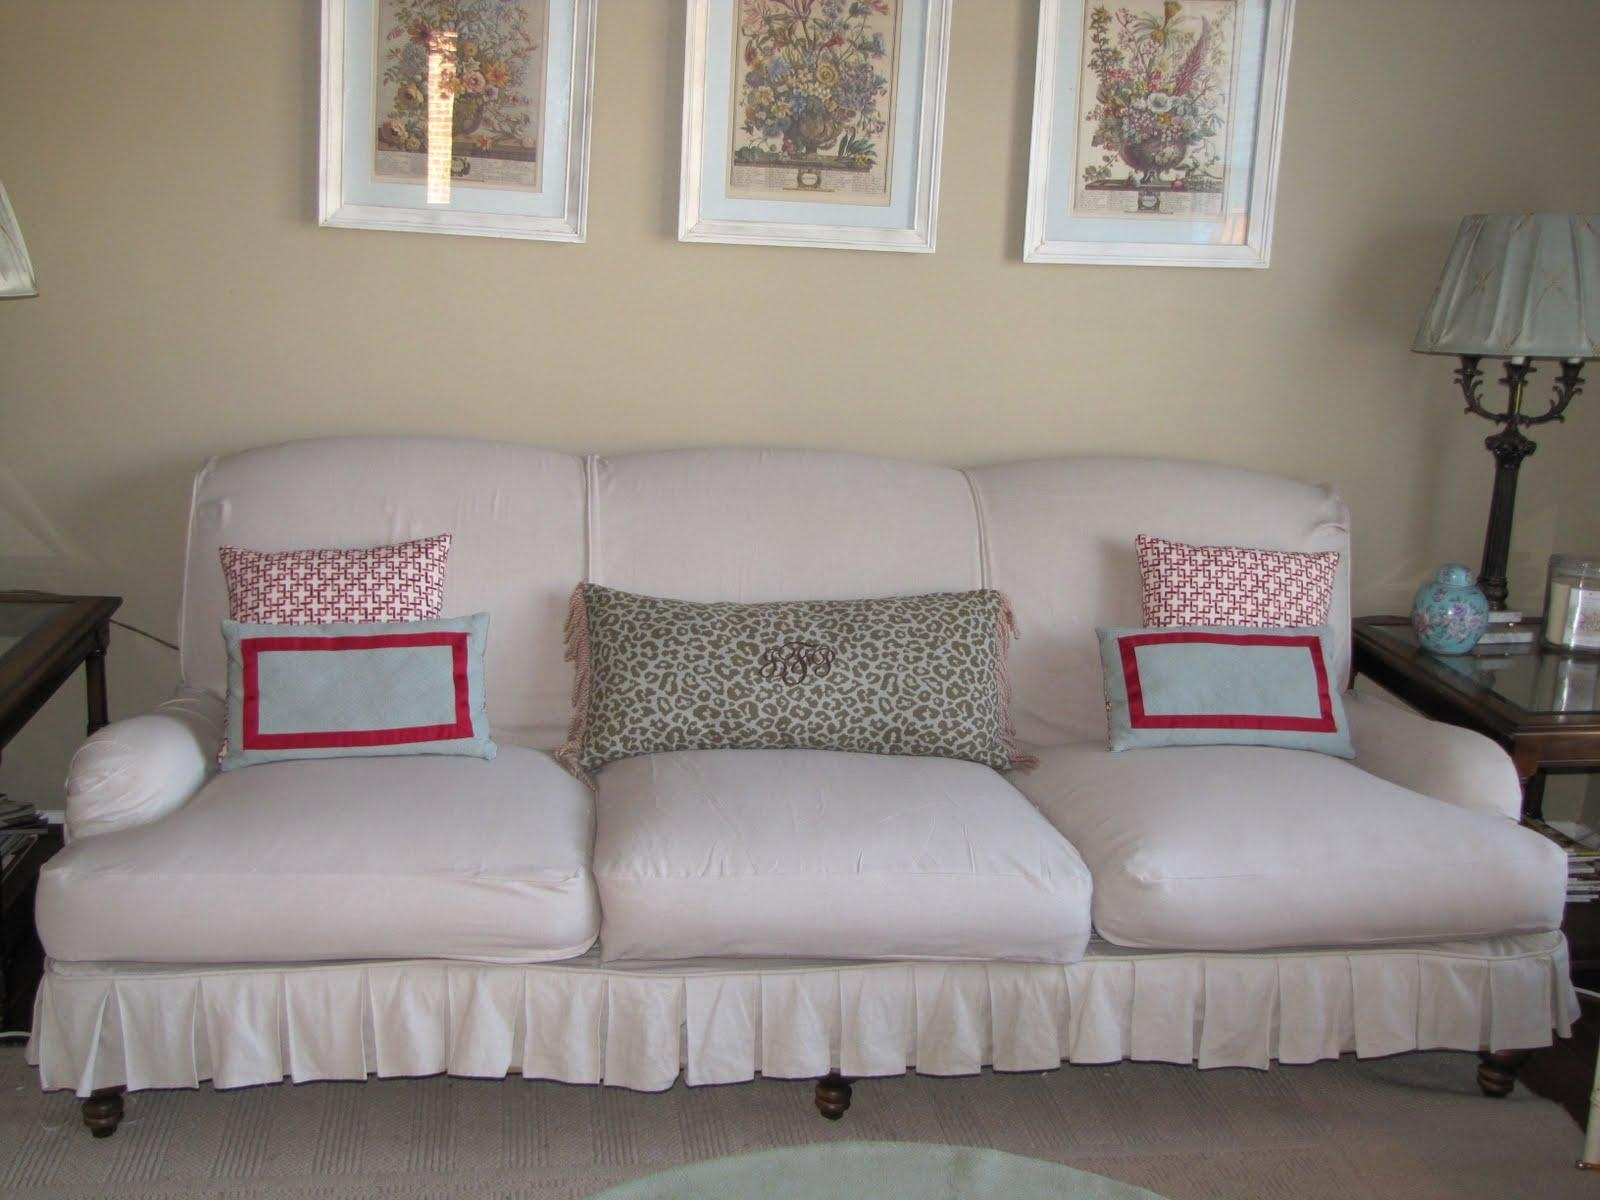 Bibbidi Bobbidi Beautiful: How To Slipcover Sofas And Chairs Within Slipcovers For Chairs And Sofas (Image 4 of 20)